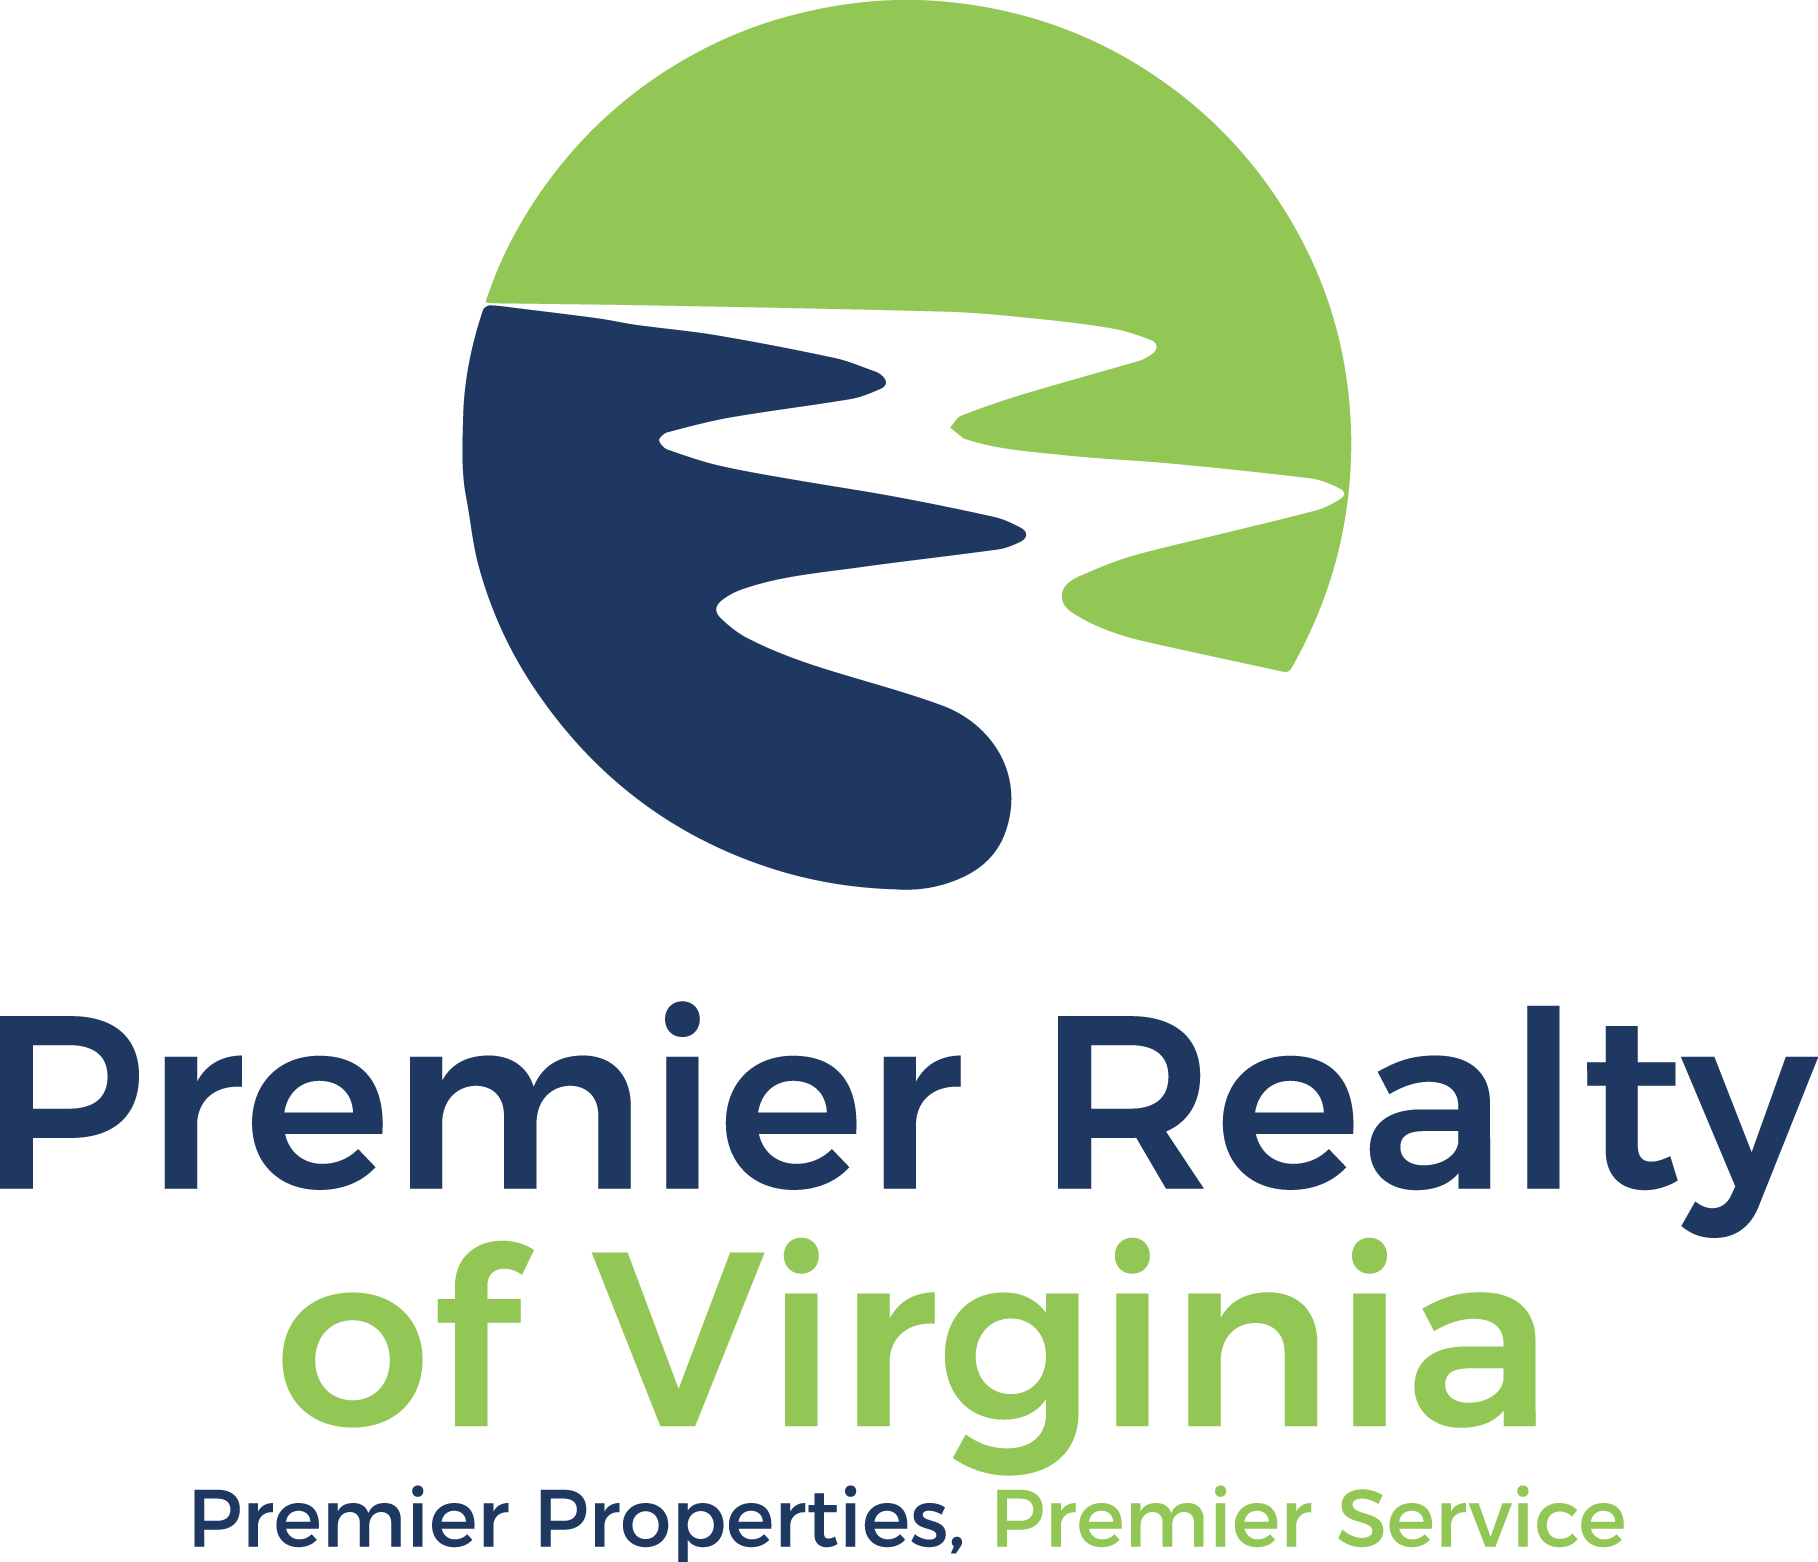 Premier Realty of Virginia